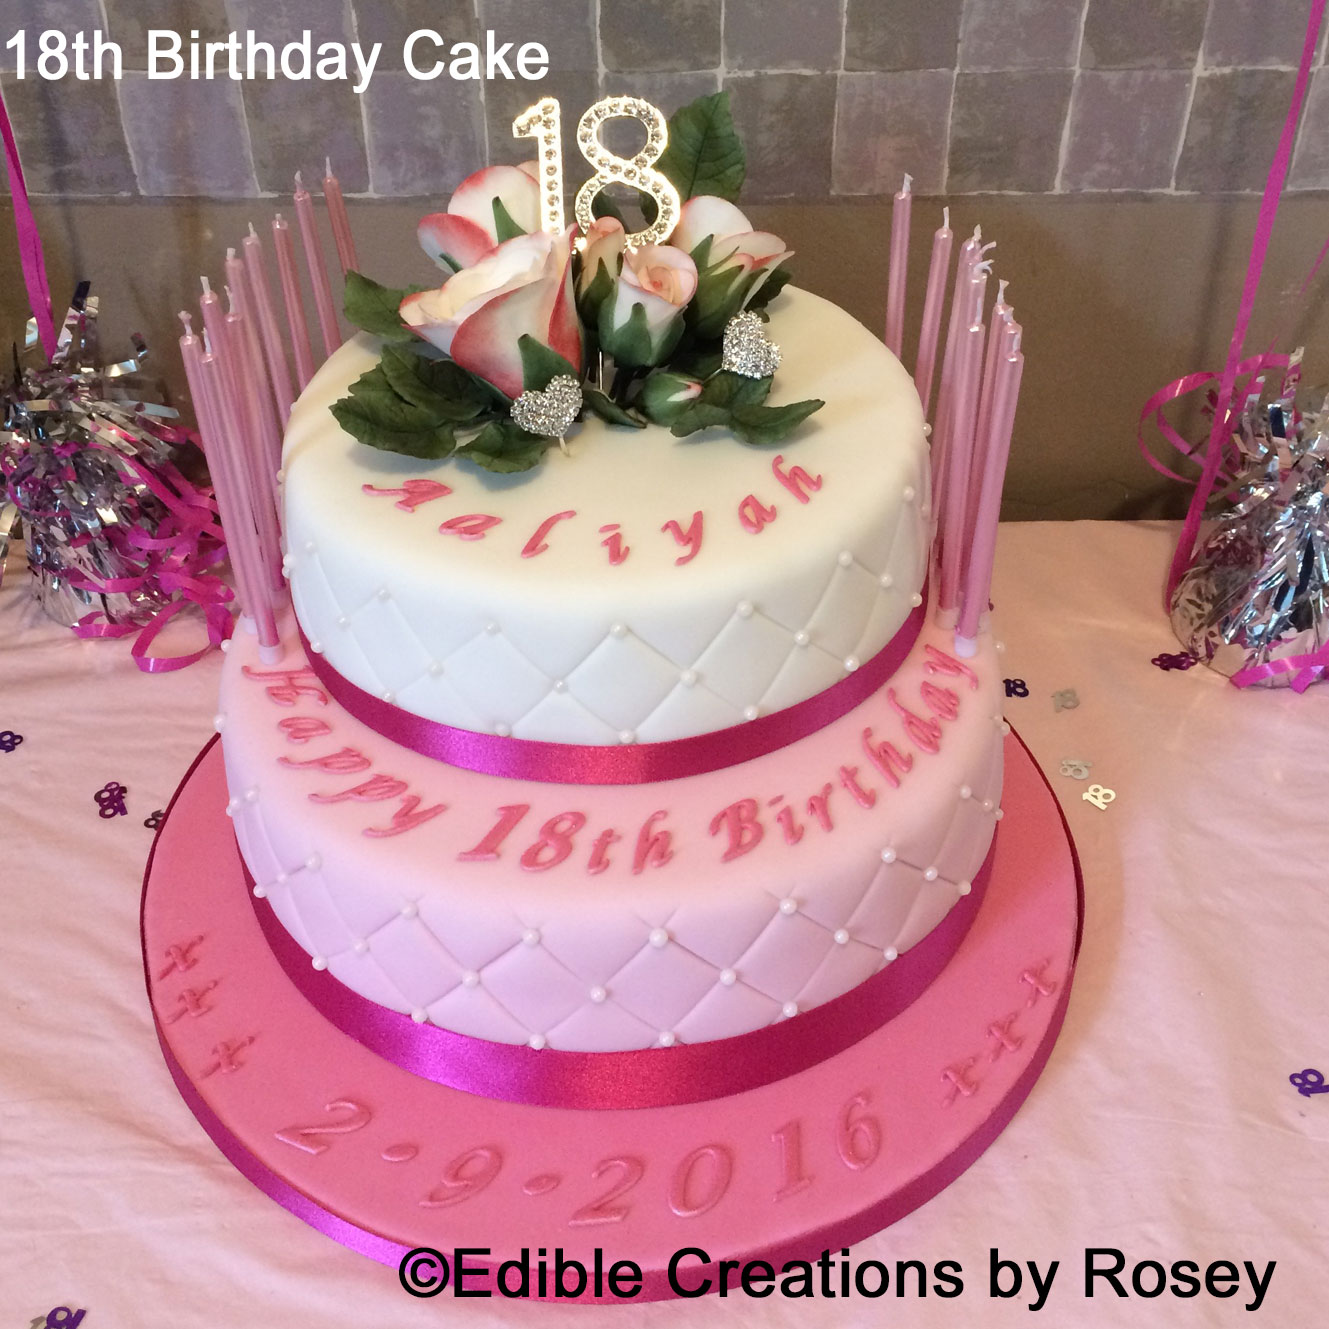 Images Tagged 18th Birthday Cake